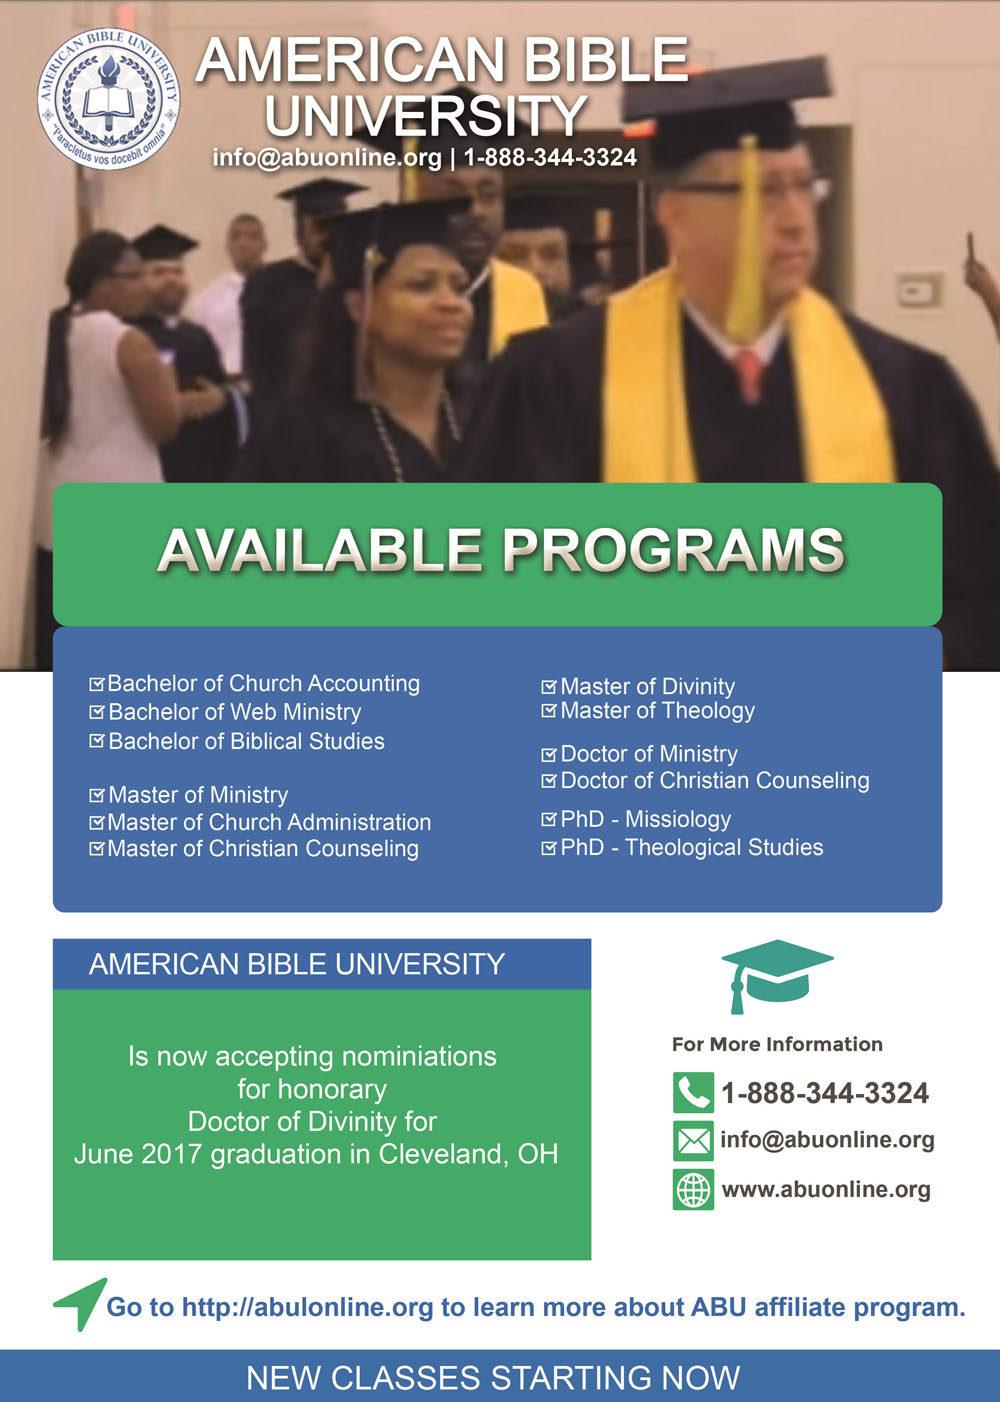 American Bible University Available Programs | Church Accounting, Web Ministry, Biblical Studies, Ministry, Church Administration, Christian Counseling, Divinity, Theology, Christian Counseling, Missiology &amp; More! Also Accepting Nominations for Honorary Doctor of Divinity for June 2017.  View Our Video Commercial: https://youtu.be/N2wQ9YlNsLg For More Info: 1-888-344-3324   <script language='JavaScript' type='text/javascript'>  <!--  var prefix = 'm&#97;&#105;lt&#111;:';  var suffix = '';  var attribs = '';  var path = 'hr' + 'ef' + '=';  var addy5363 = '&#105;nf&#111;' + '&#64;';  addy5363 = addy5363 + '&#97;b&#117;&#111;nl&#105;n&#101;' + '&#46;' + '&#111;rg';  document.write( '<a ' + path + '\'' + prefix + addy5363 + suffix + '\'' + attribs + '>' );  document.write( addy5363 );  document.write( '<\/a>' );  //-->  </script><script language='JavaScript' type='text/javascript'>  <!--  document.write( '<span style=\'display: none;\'>' );  //-->  </script>This e-mail address is being protected from spambots. You need JavaScript enabled to view it  <script language='JavaScript' type='text/javascript'>  <!--  document.write( '</' );  document.write( 'span>' );  //-->  </script> www.abuonline.org